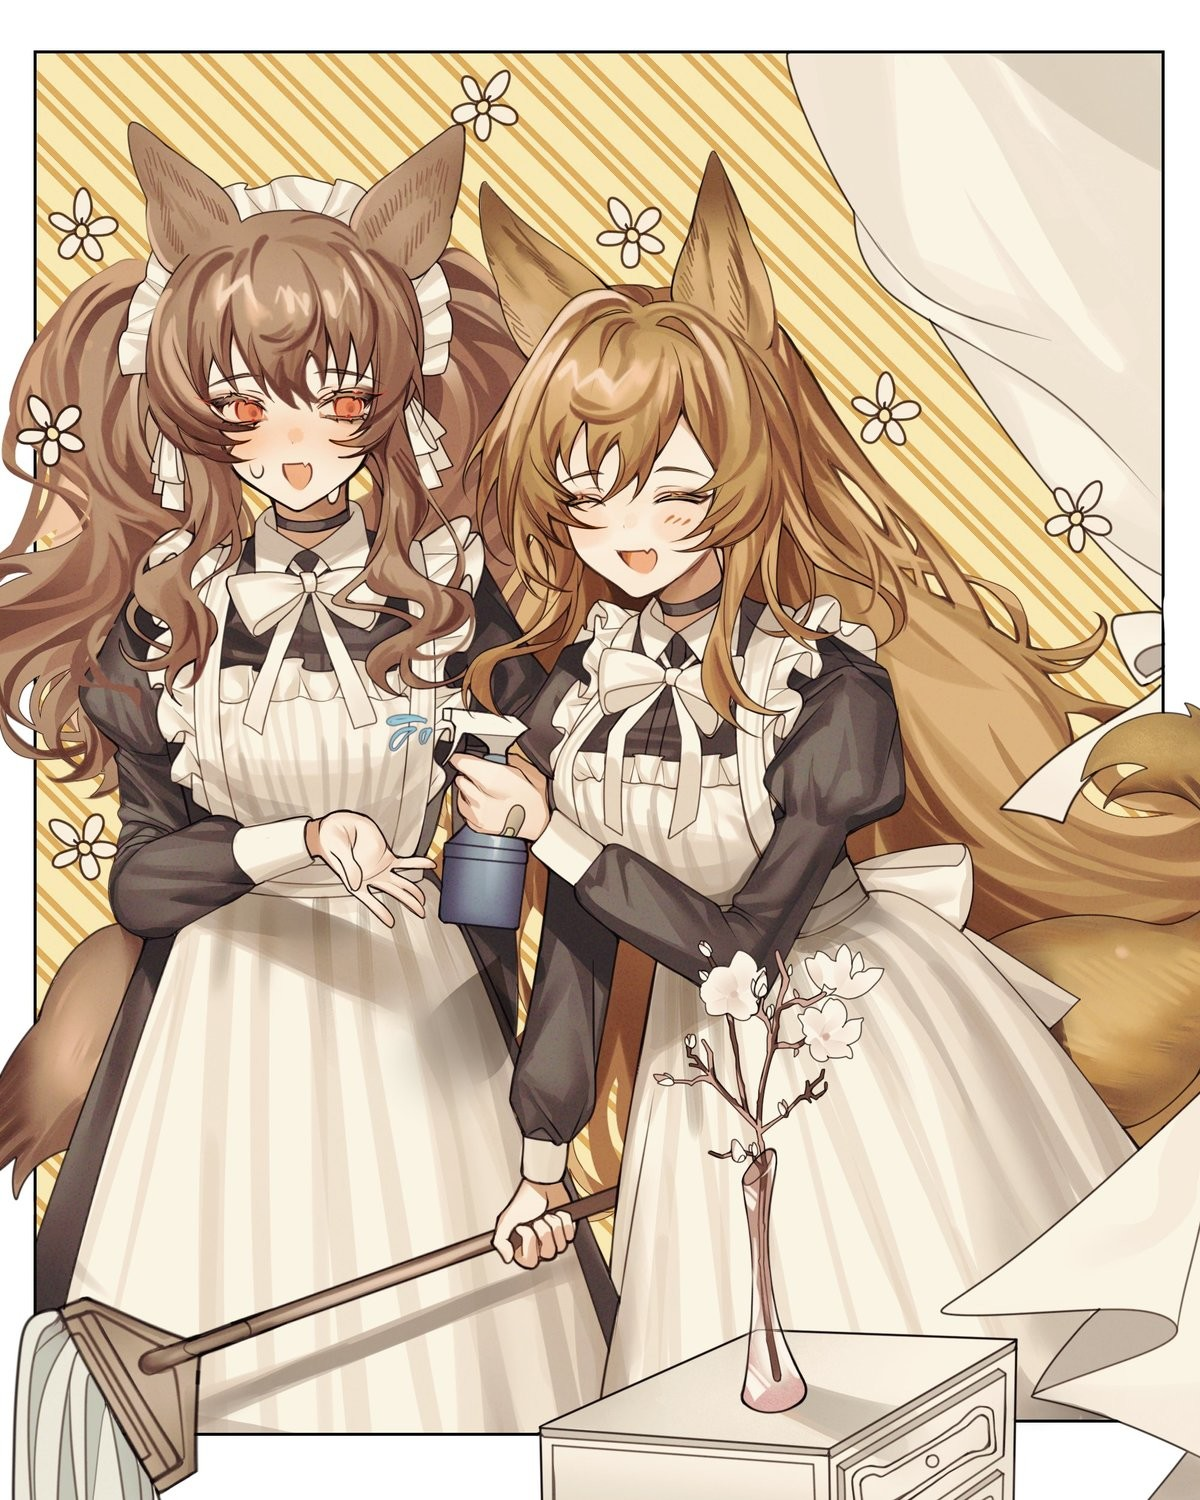 Maid March part 9. join list: SplendidServants (495 subs)Mention History join list: